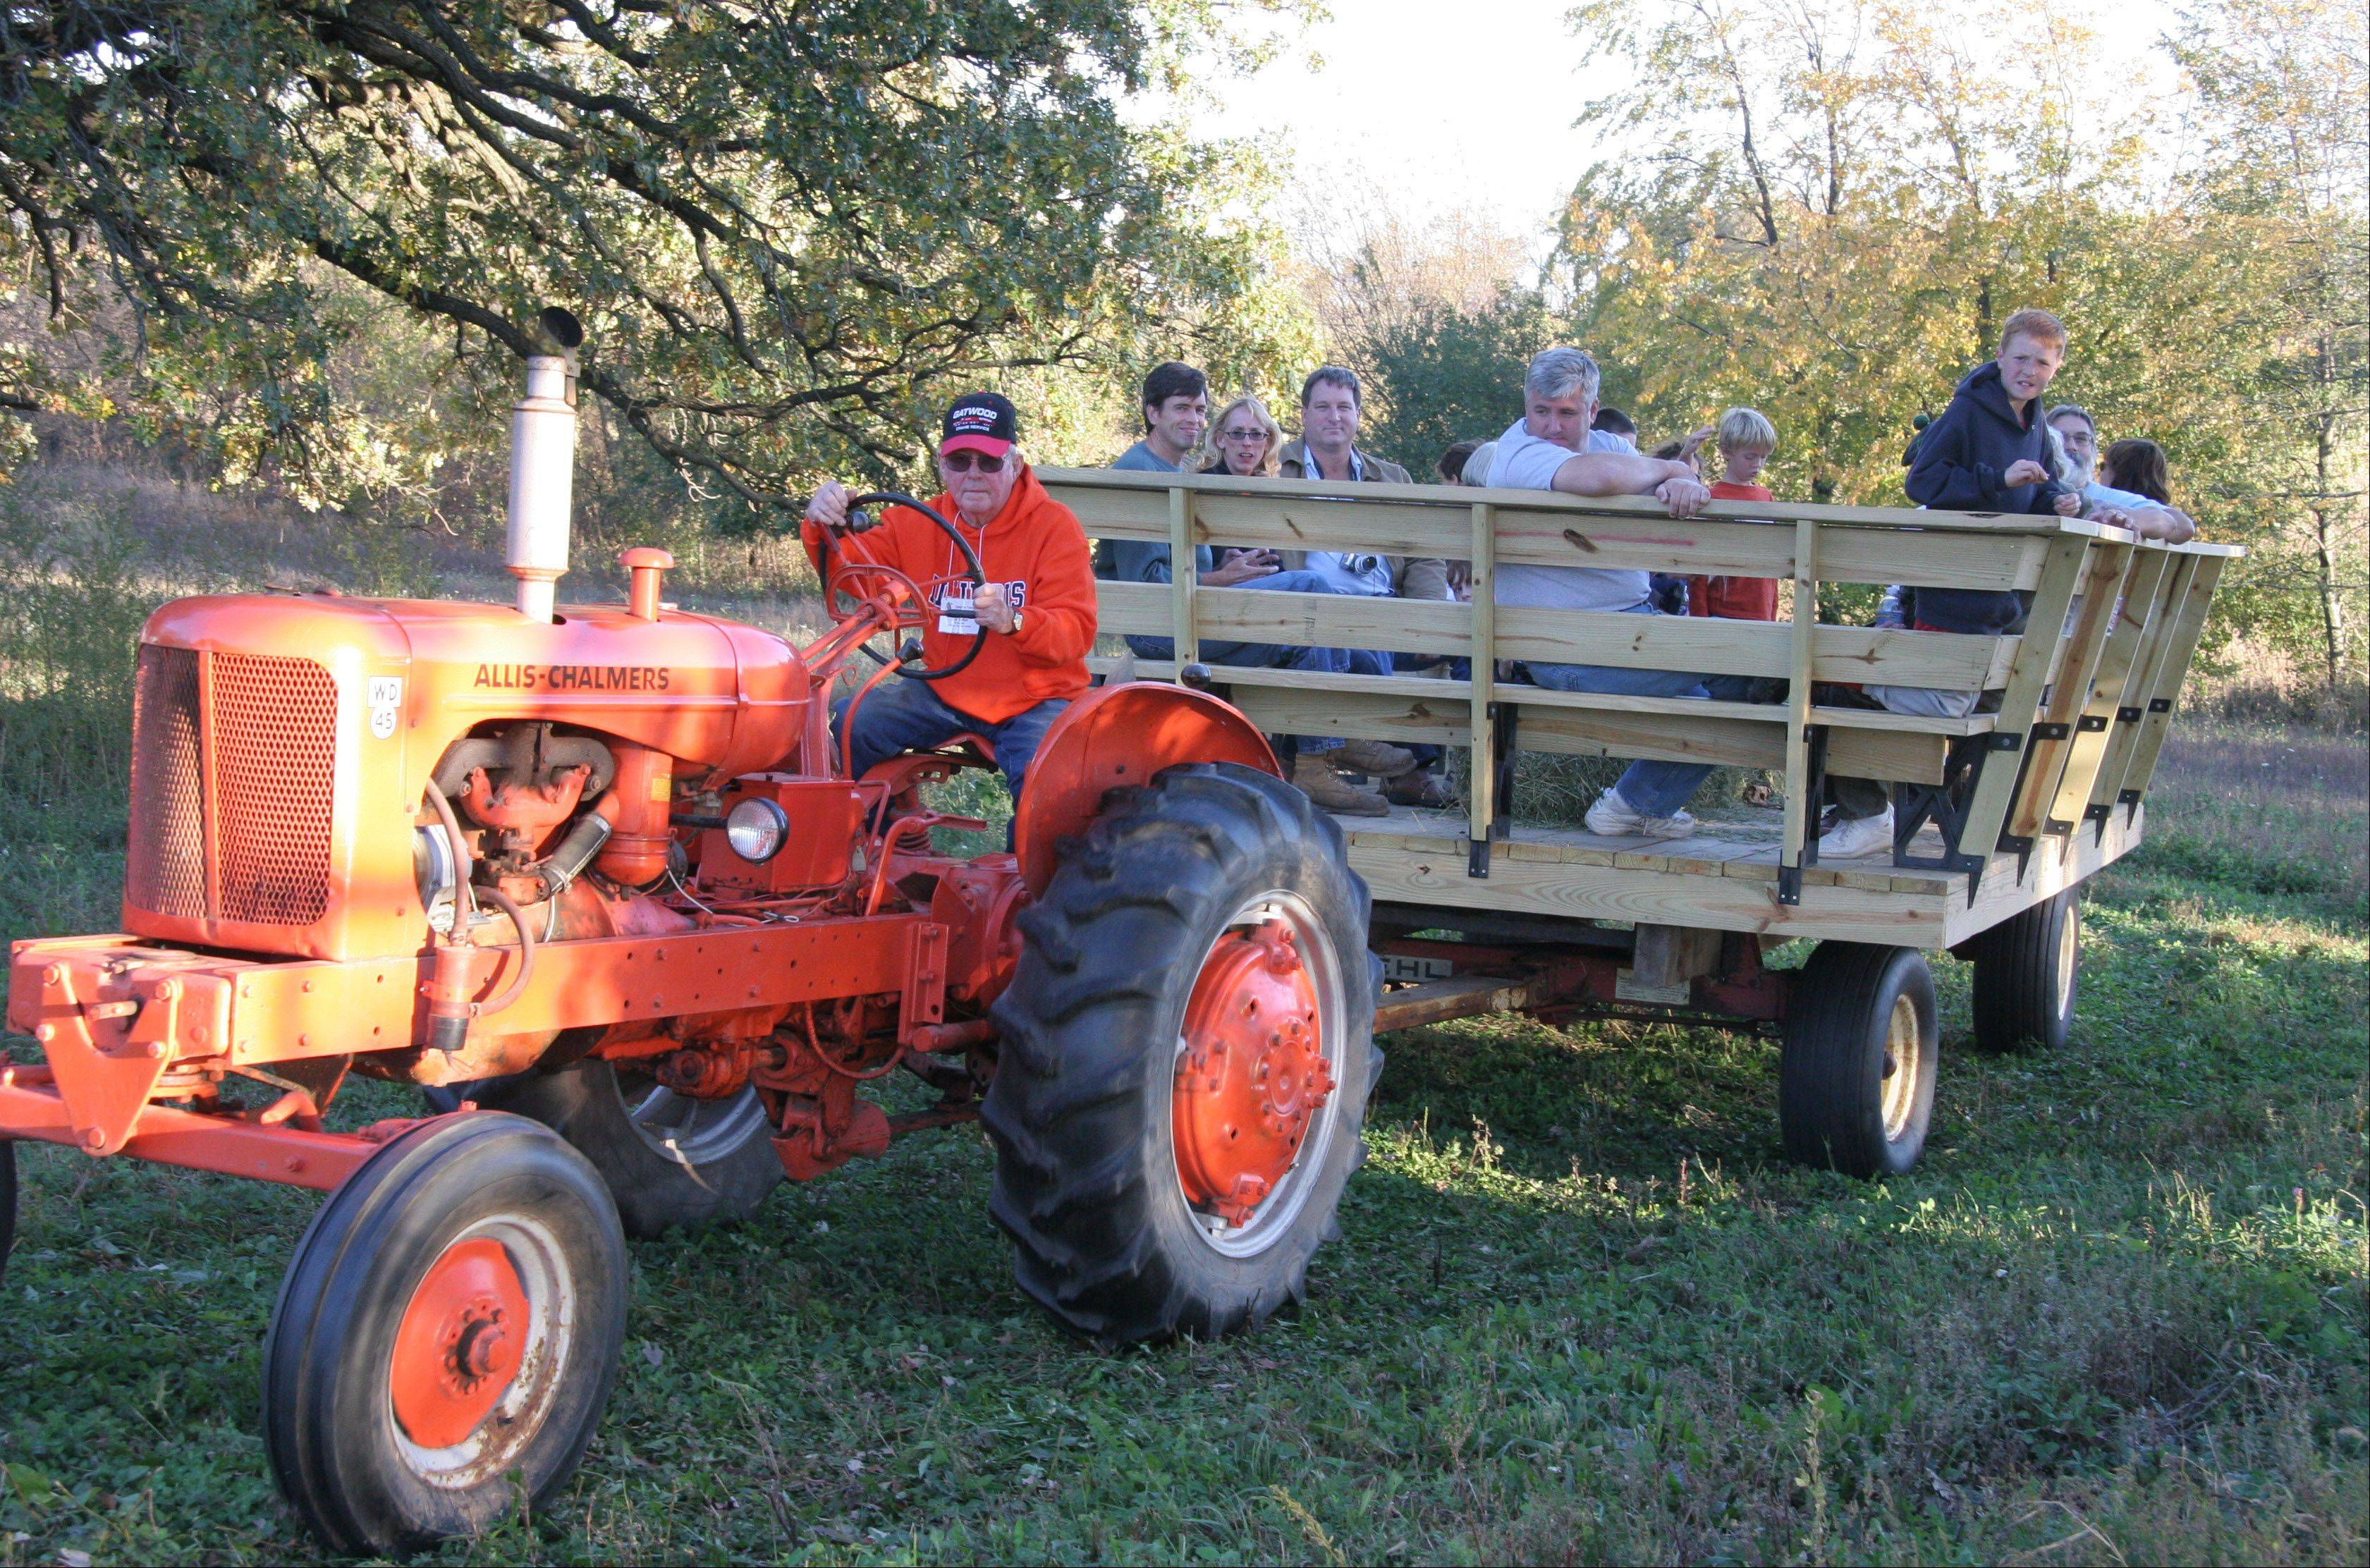 Hay rides are a staple at the 7th annual Prairie Fest at the Corron Farm in Campton Hills. The festival runs from 1 p.m. to 5 p.m. Saturday at the farm, 7N761 Corron Road, Campton Hills.